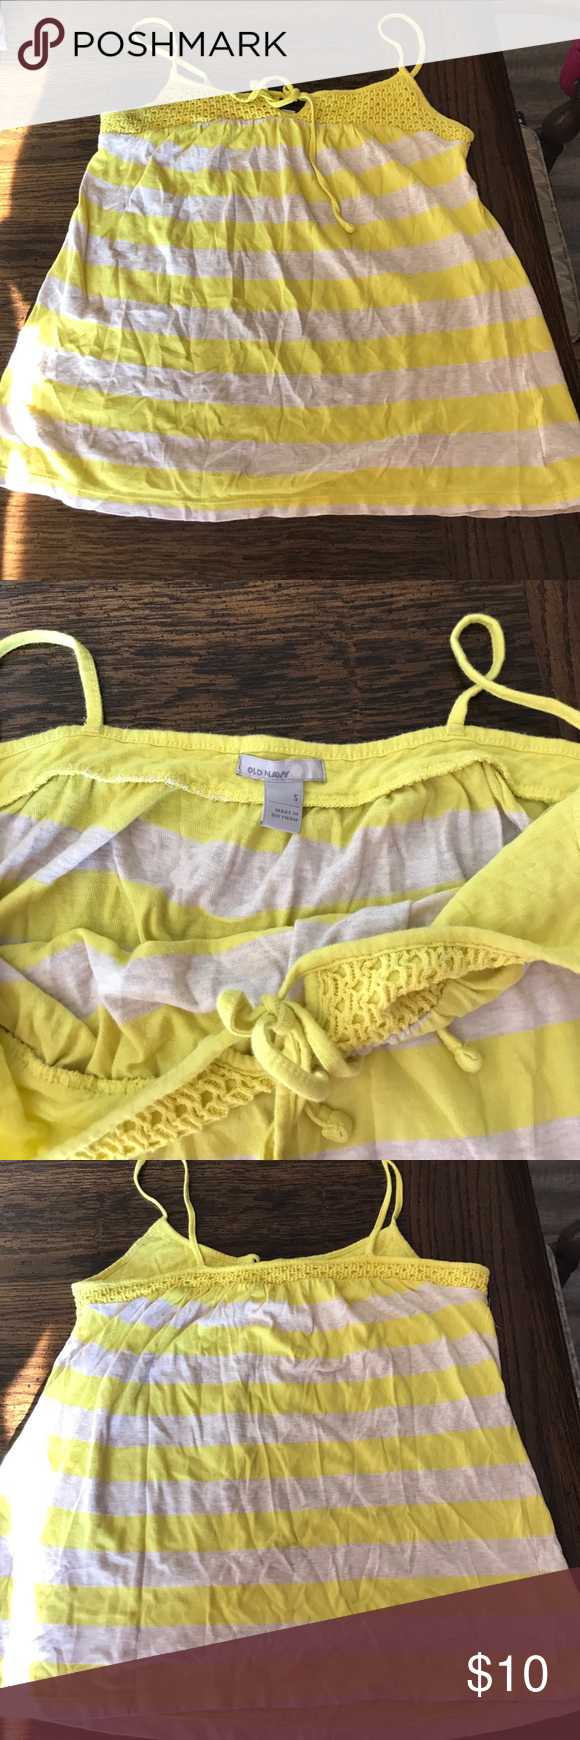 Old Navy tank top Like new worn a couple times, Old Navy yellow and cream colored tank top. Size small. Tie and ruching top. Tiny stain on back as seen on the last picture but barely noticeable.. I almost didn't see it. Old Navy Tops Tank Tops